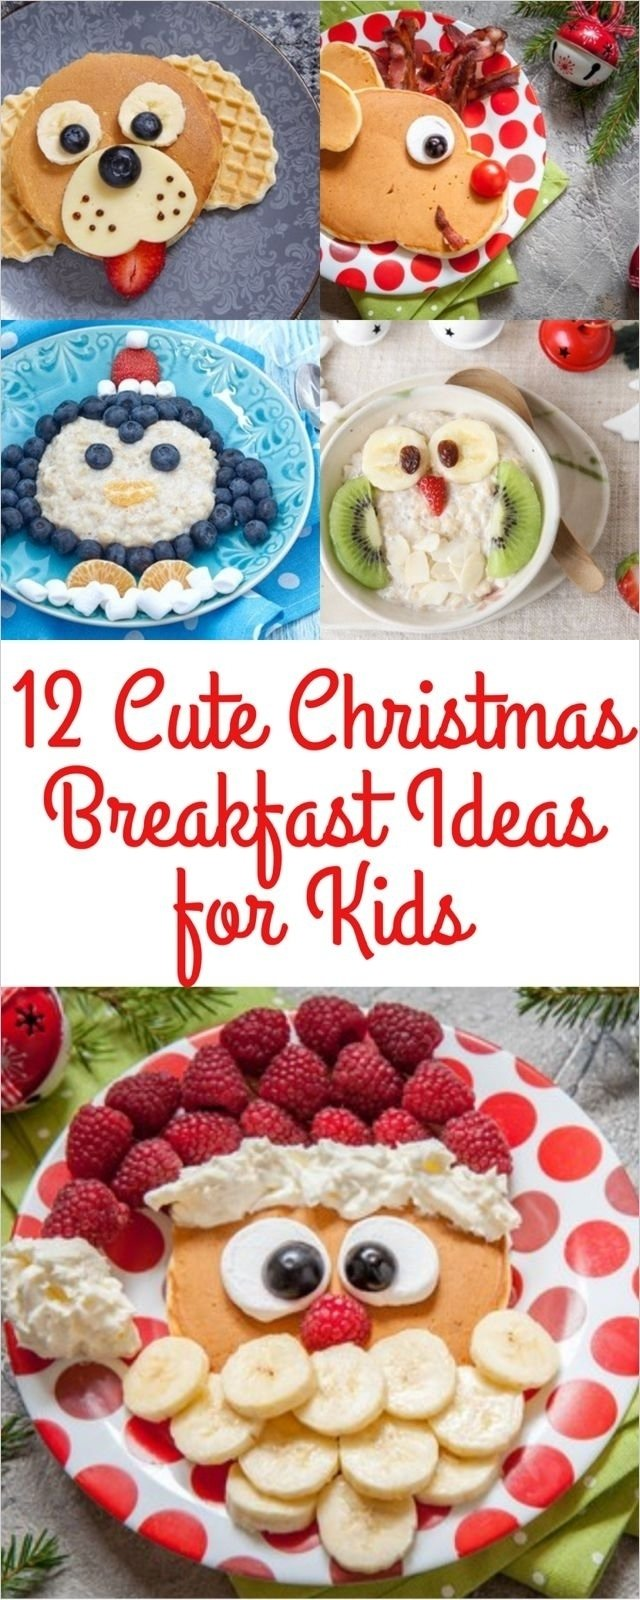 10 Fashionable Quick Breakfast Ideas For Kids breakfast menu ideas for kids resume corner 1